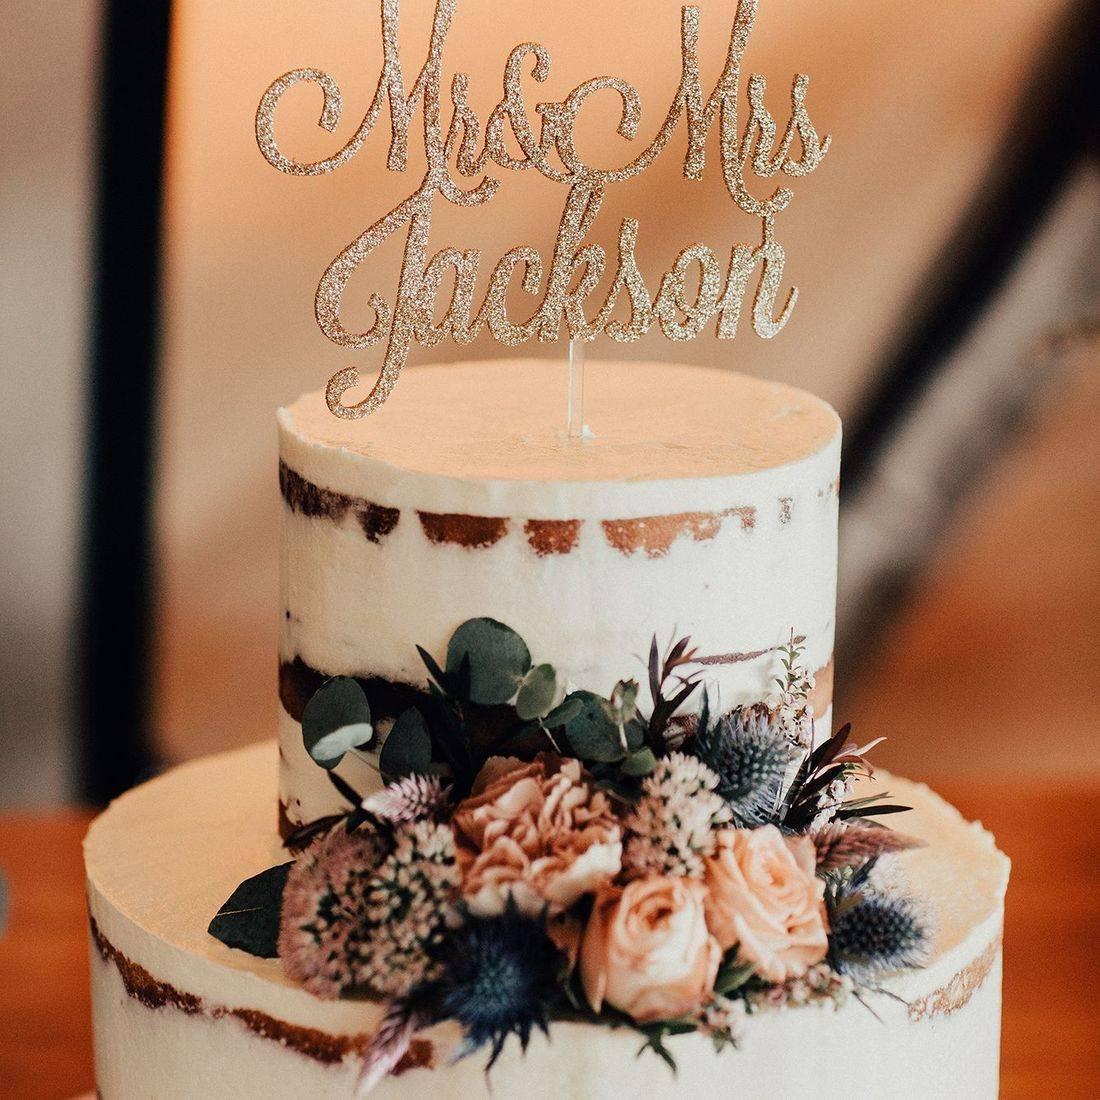 Wedding Cake for Beck and Lindsay